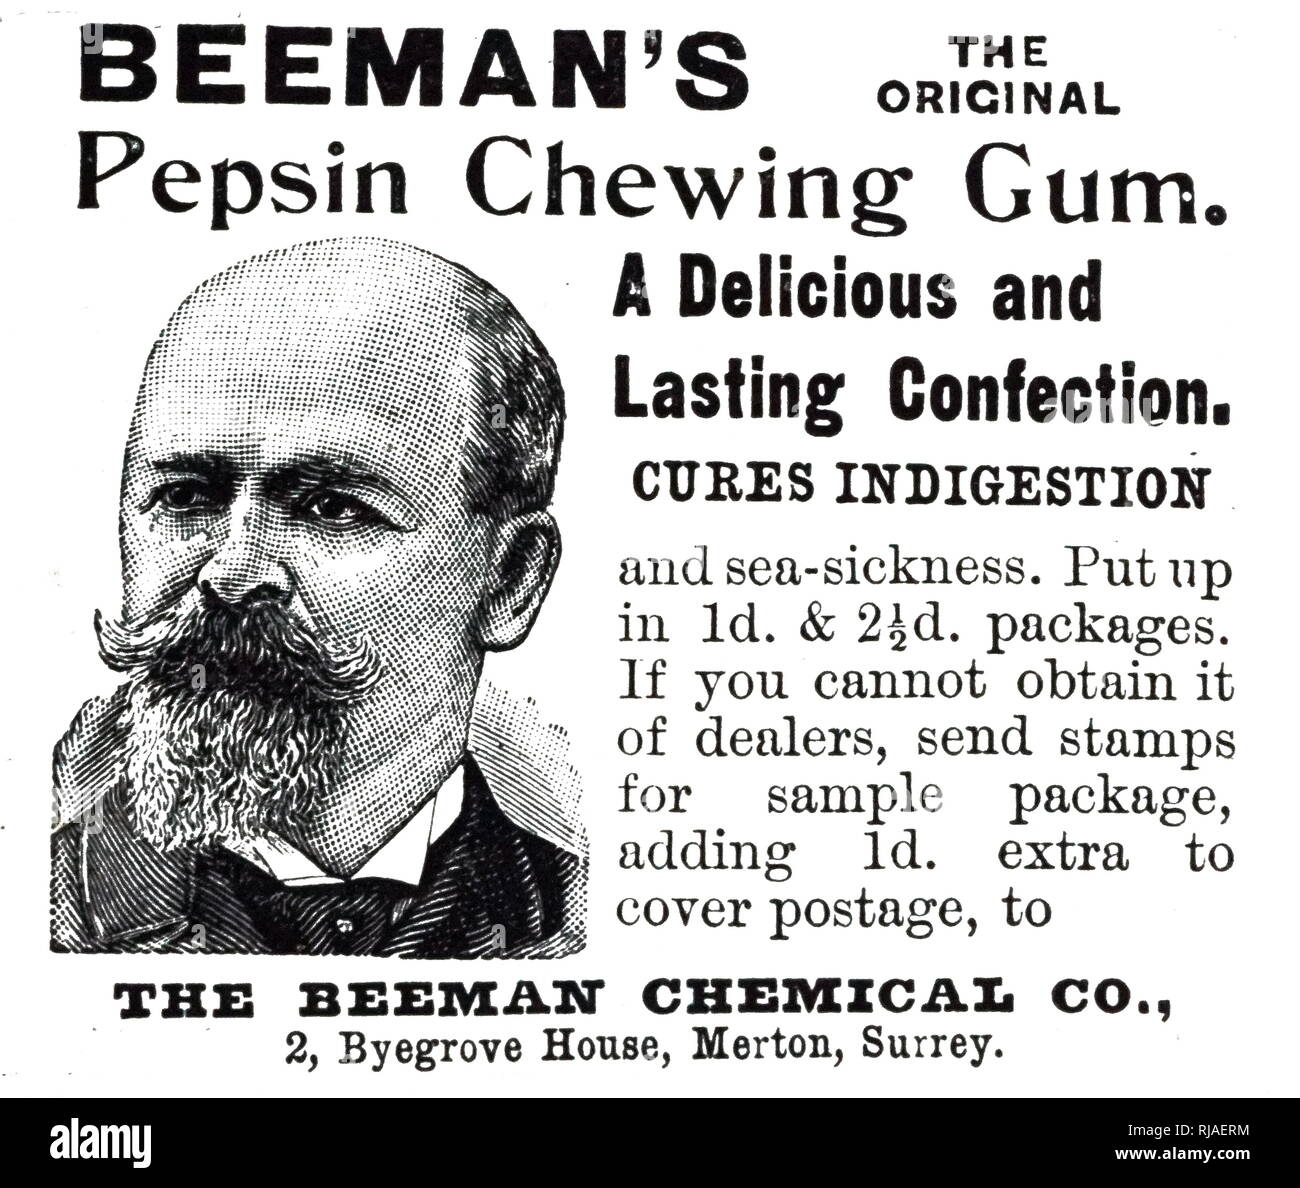 An advertisement for Beeman's Pepsin Chewing Gum. Dated 19th century - Stock Image